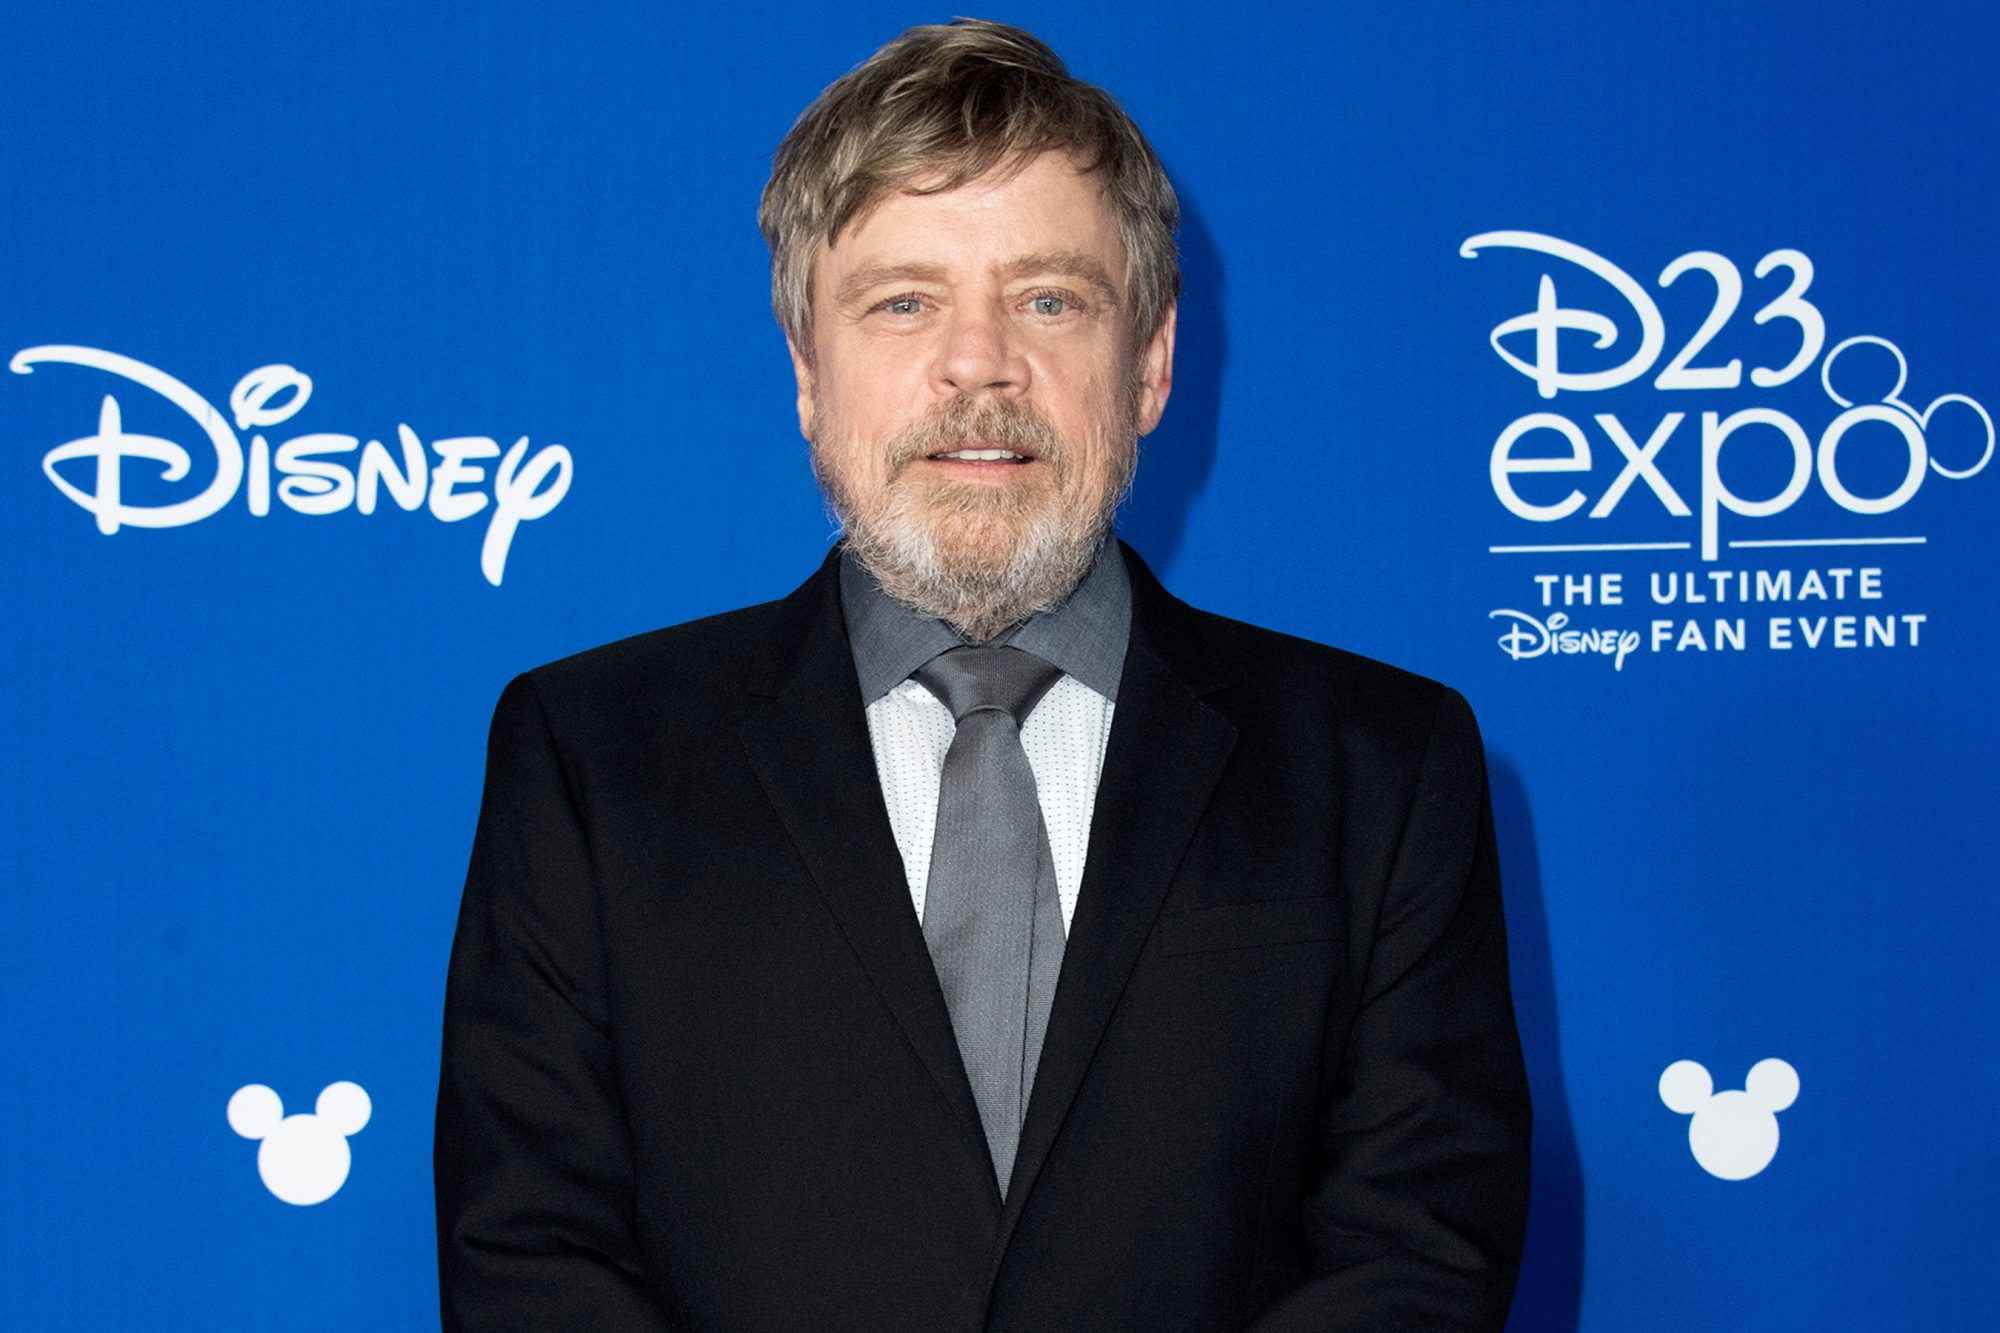 ABC's Coverage Of The D23 Expo 2017